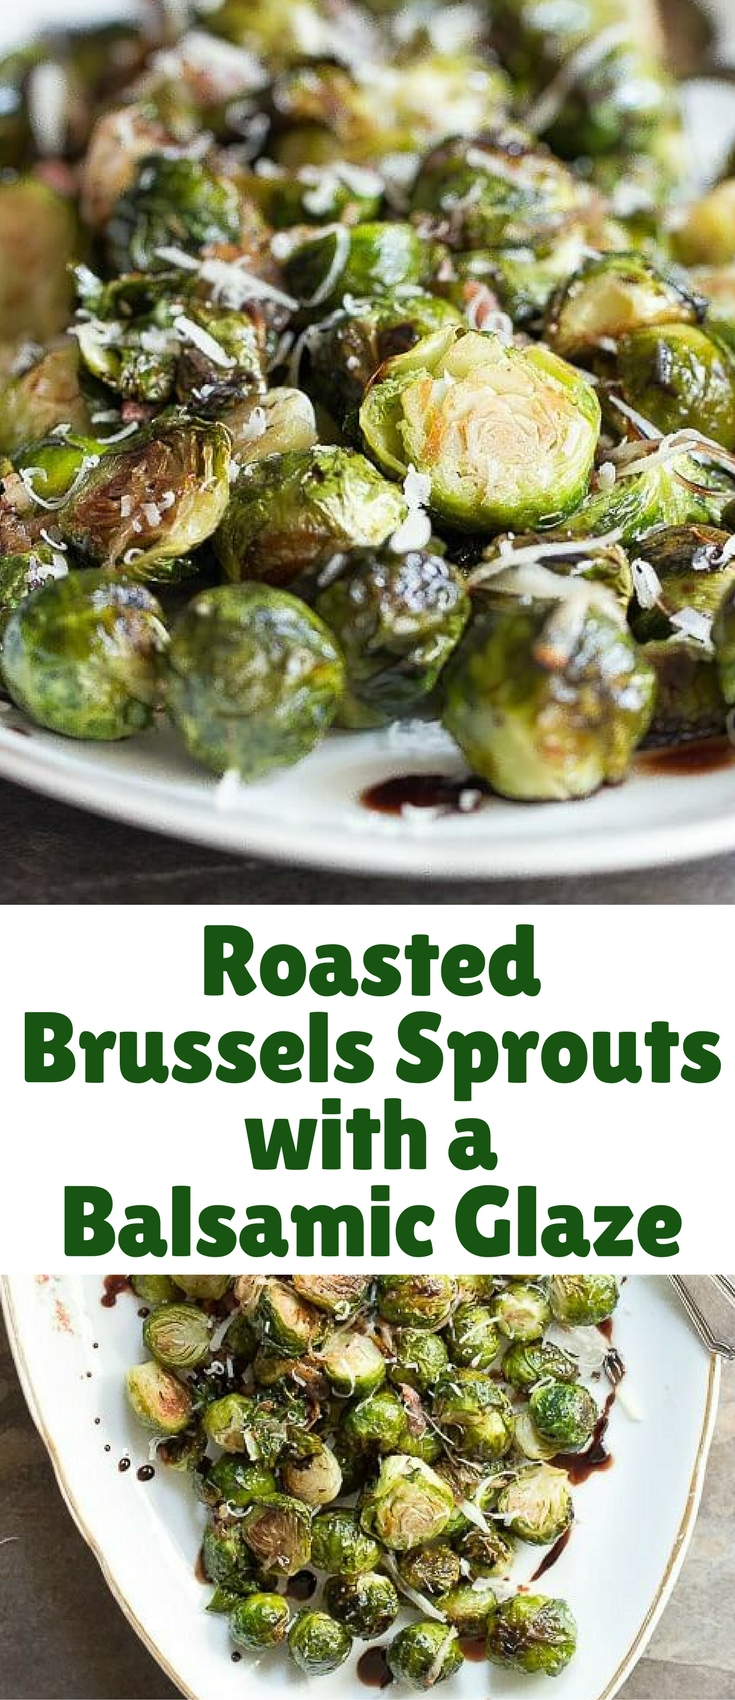 Roasted brussels sprouts are one of those dishes where I could eat a few on the side of my plate along with a nice juicy steak, or I could eat a whole bowl of them just on their own!